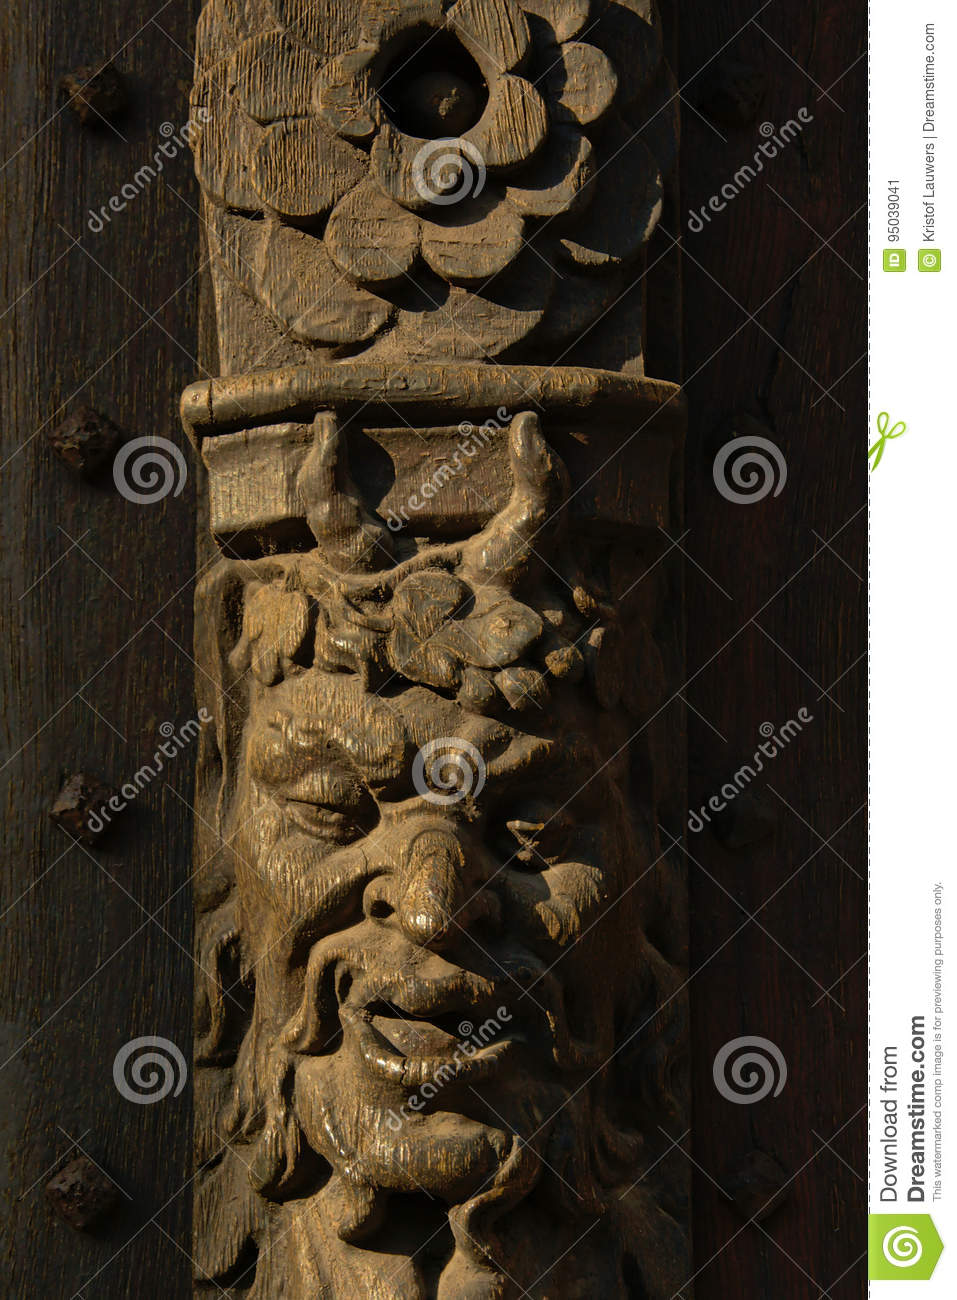 Devil`s face wood sculpture stock image image of face grin